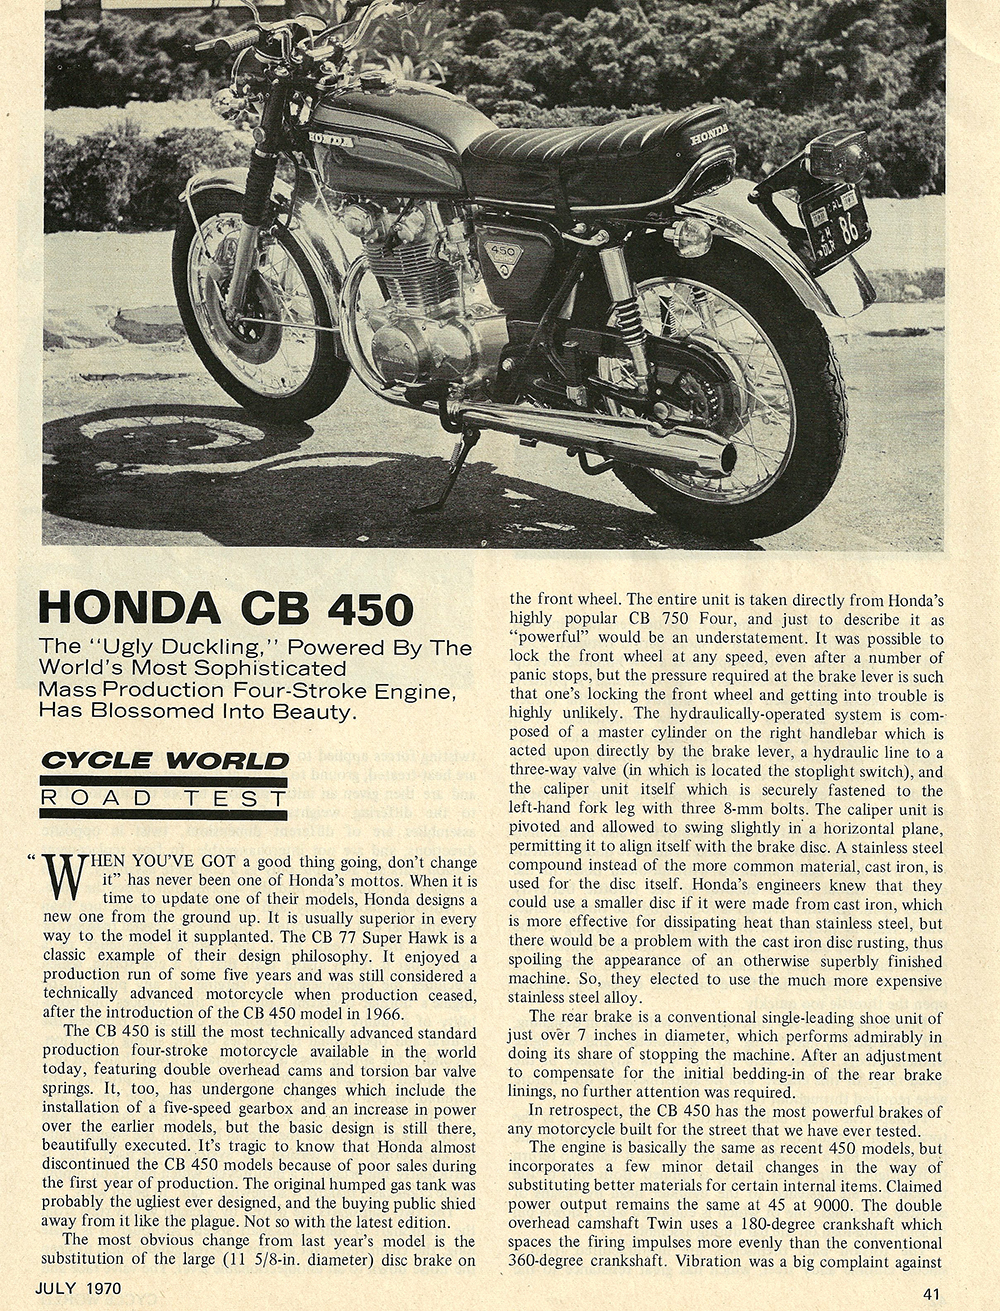 1970 Honda CB450 road test 01.jpg